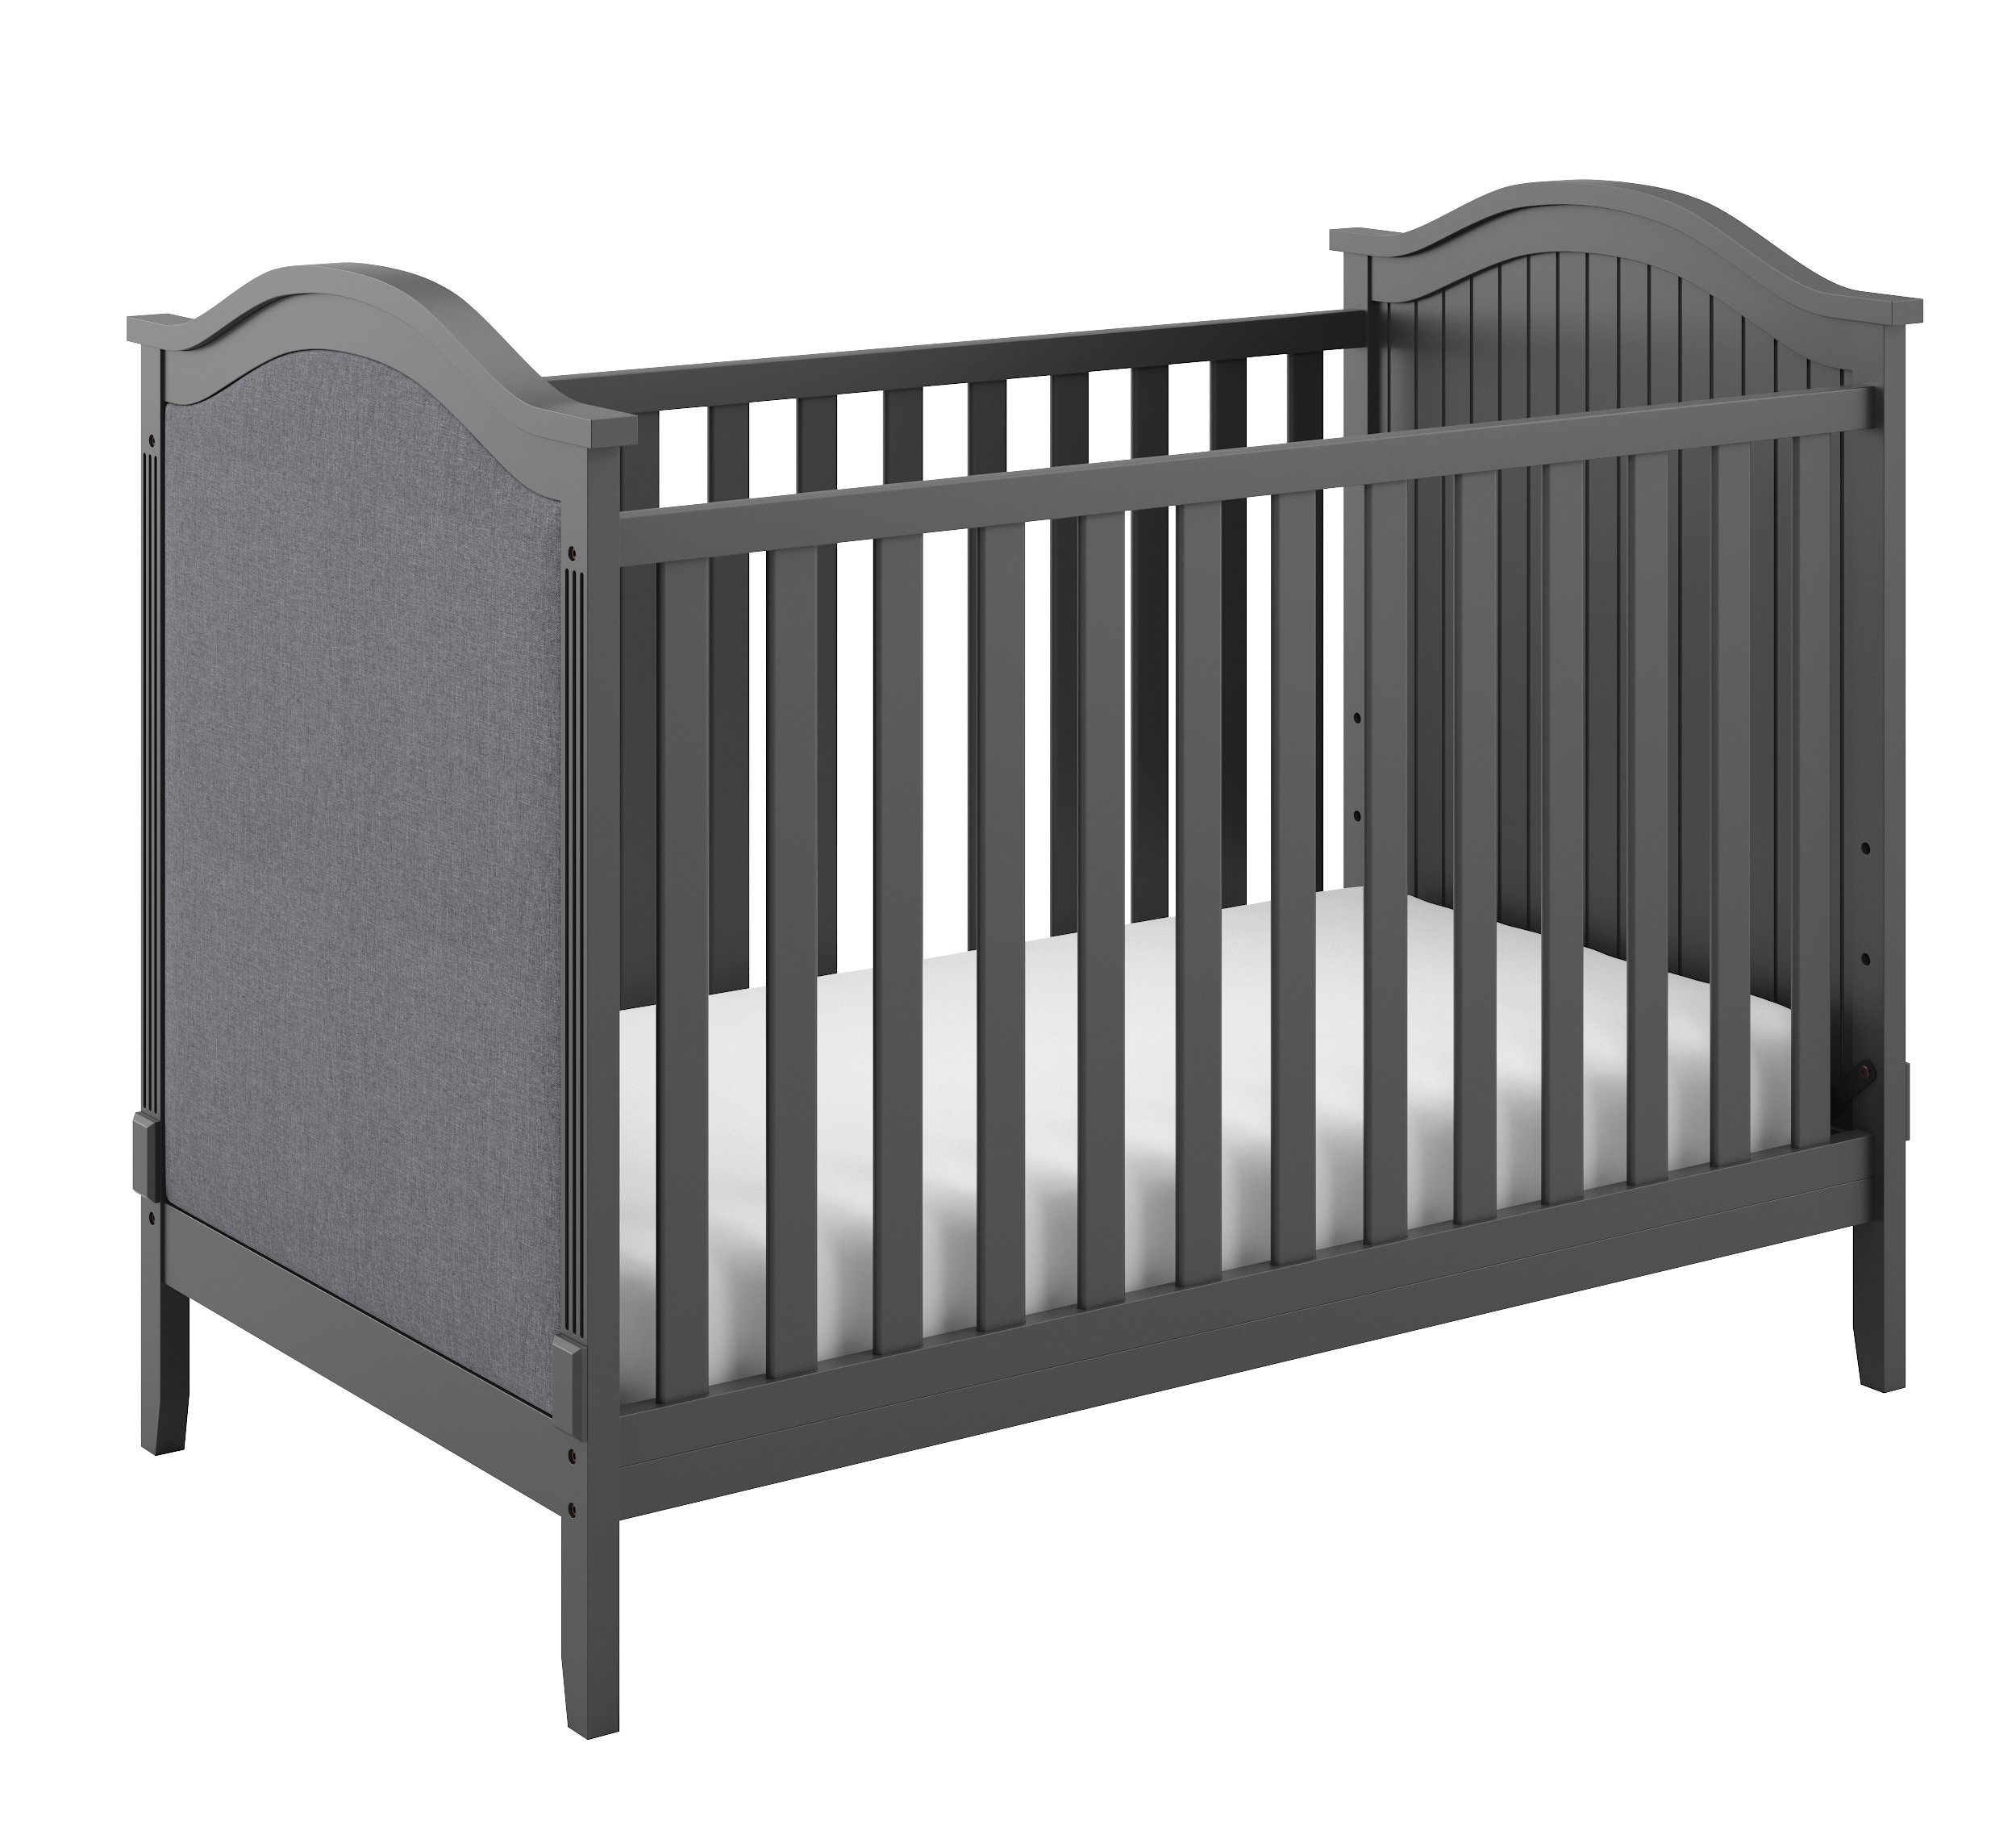 Storkcraft Rosehill Upholstered 3-in-1 Convertible Crib, Gray/Gray, Easily Converts to Toddler Bed or Day Bed Three Position Adjustable Height Mattress (Mattress Not Included) by Storkcraft